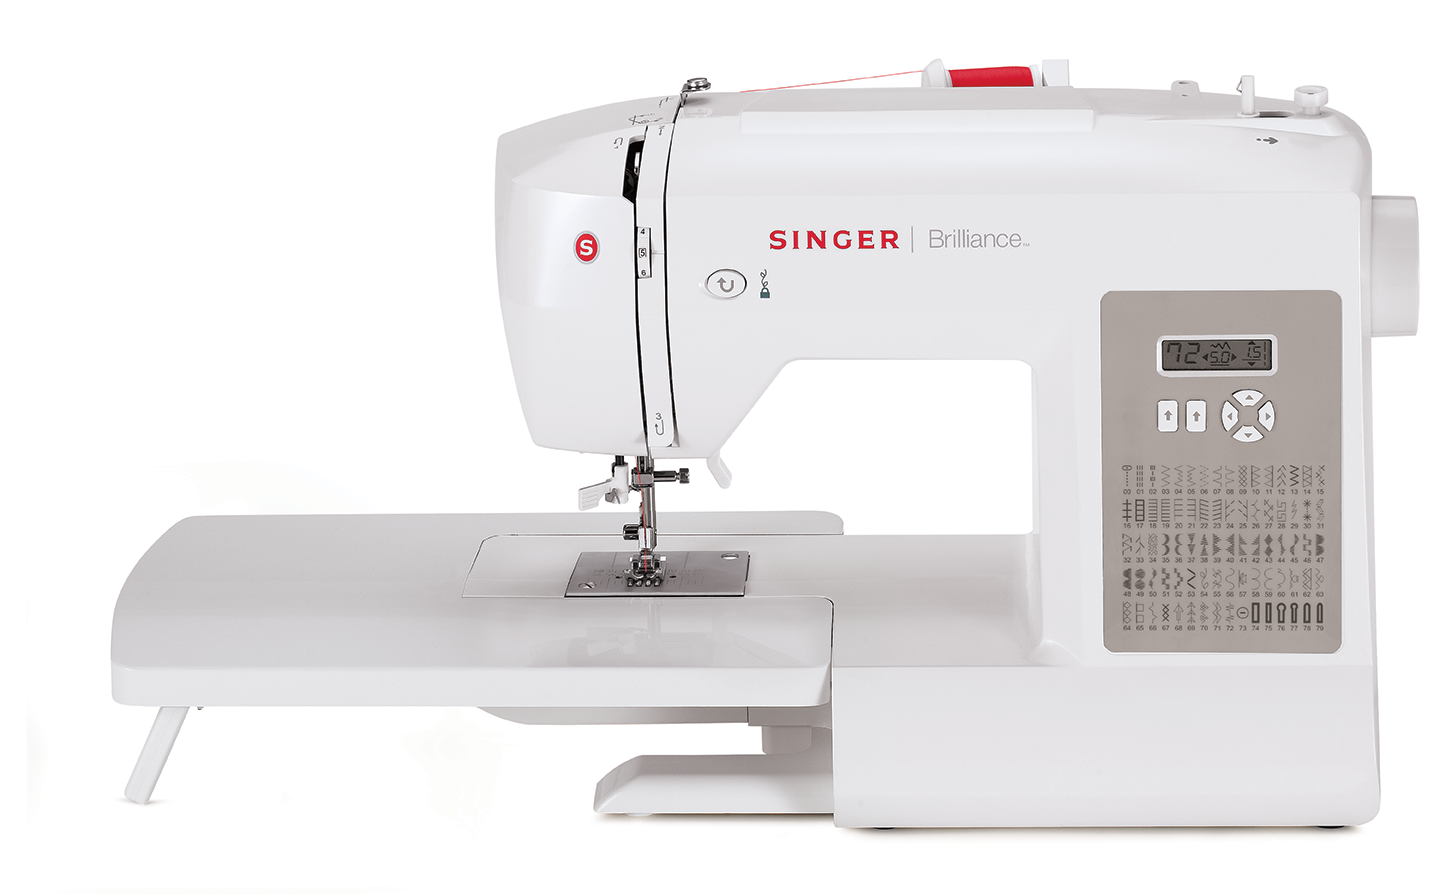 Brilliance 6180 - Singer Electronic Sewing Machines